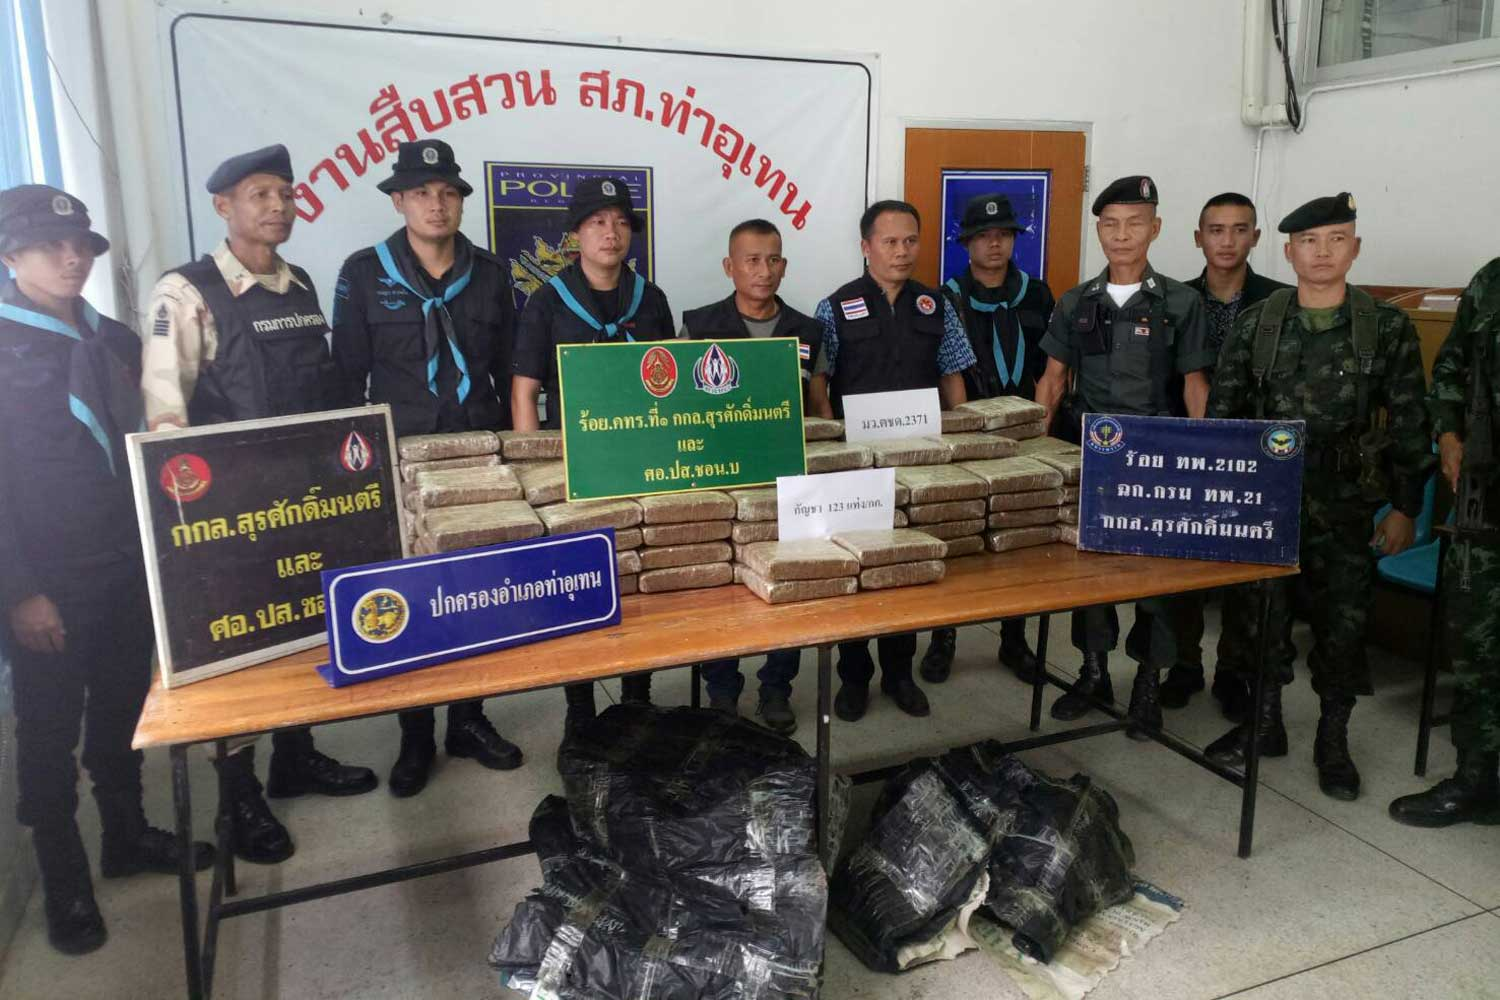 Officials show more than 100 kilogrammes of marijuana seized from a hotel in Tha Uthen district of Nakhon Phanom late Friday night. Suspects escaped. (Photo by Pattanapong Sripiachai)